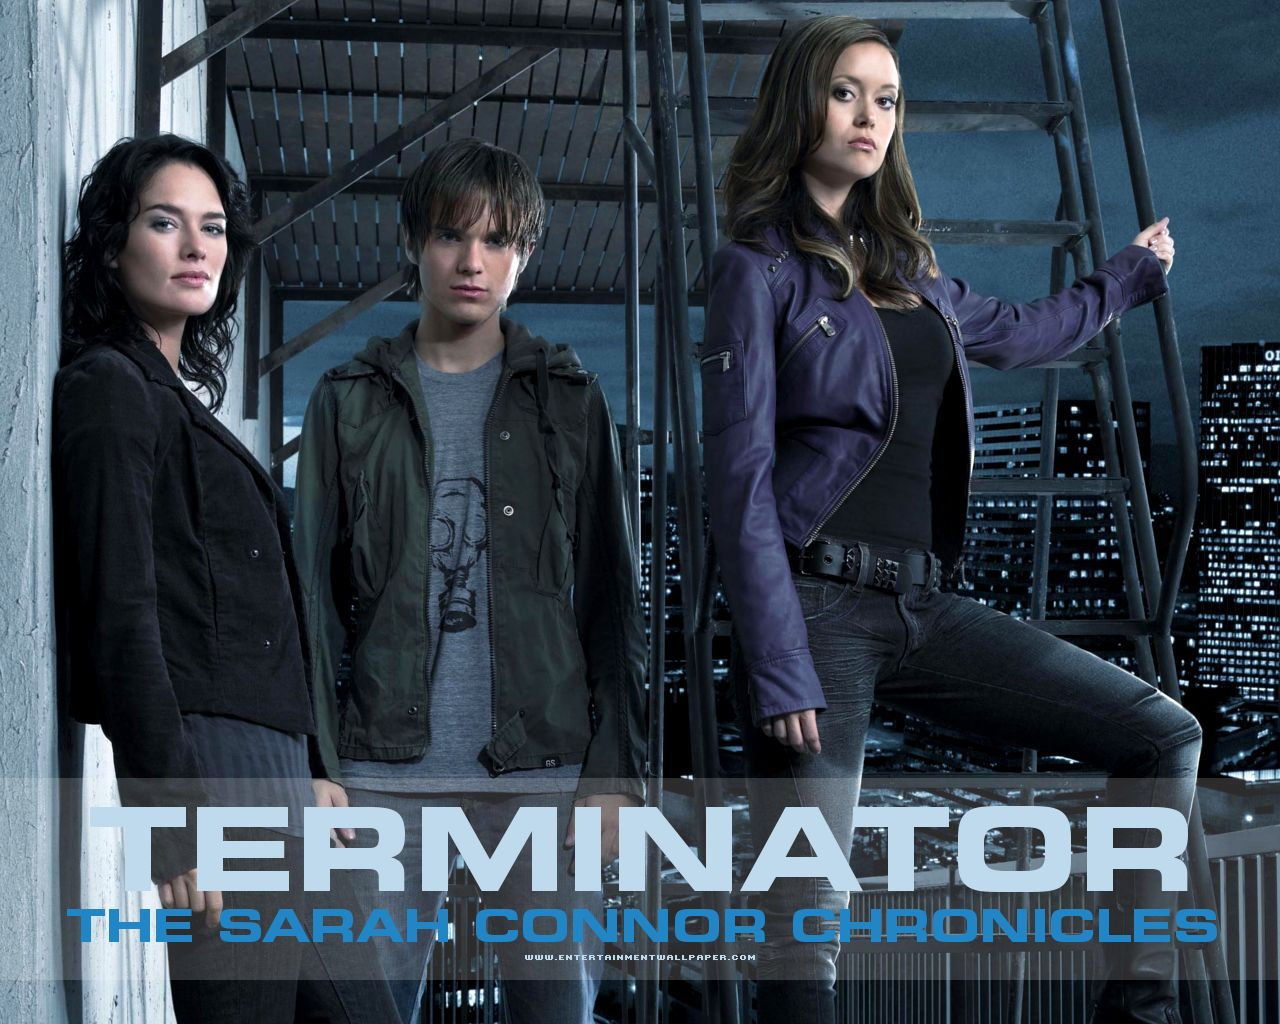 http://3.bp.blogspot.com/-wt_zSUklt9Y/TqI8ZOLeP7I/AAAAAAAAAdI/0Wwb9dofNYs/s1600/terminator_the_sarah_connor_chronicles_wallpaper_-_5.jpg